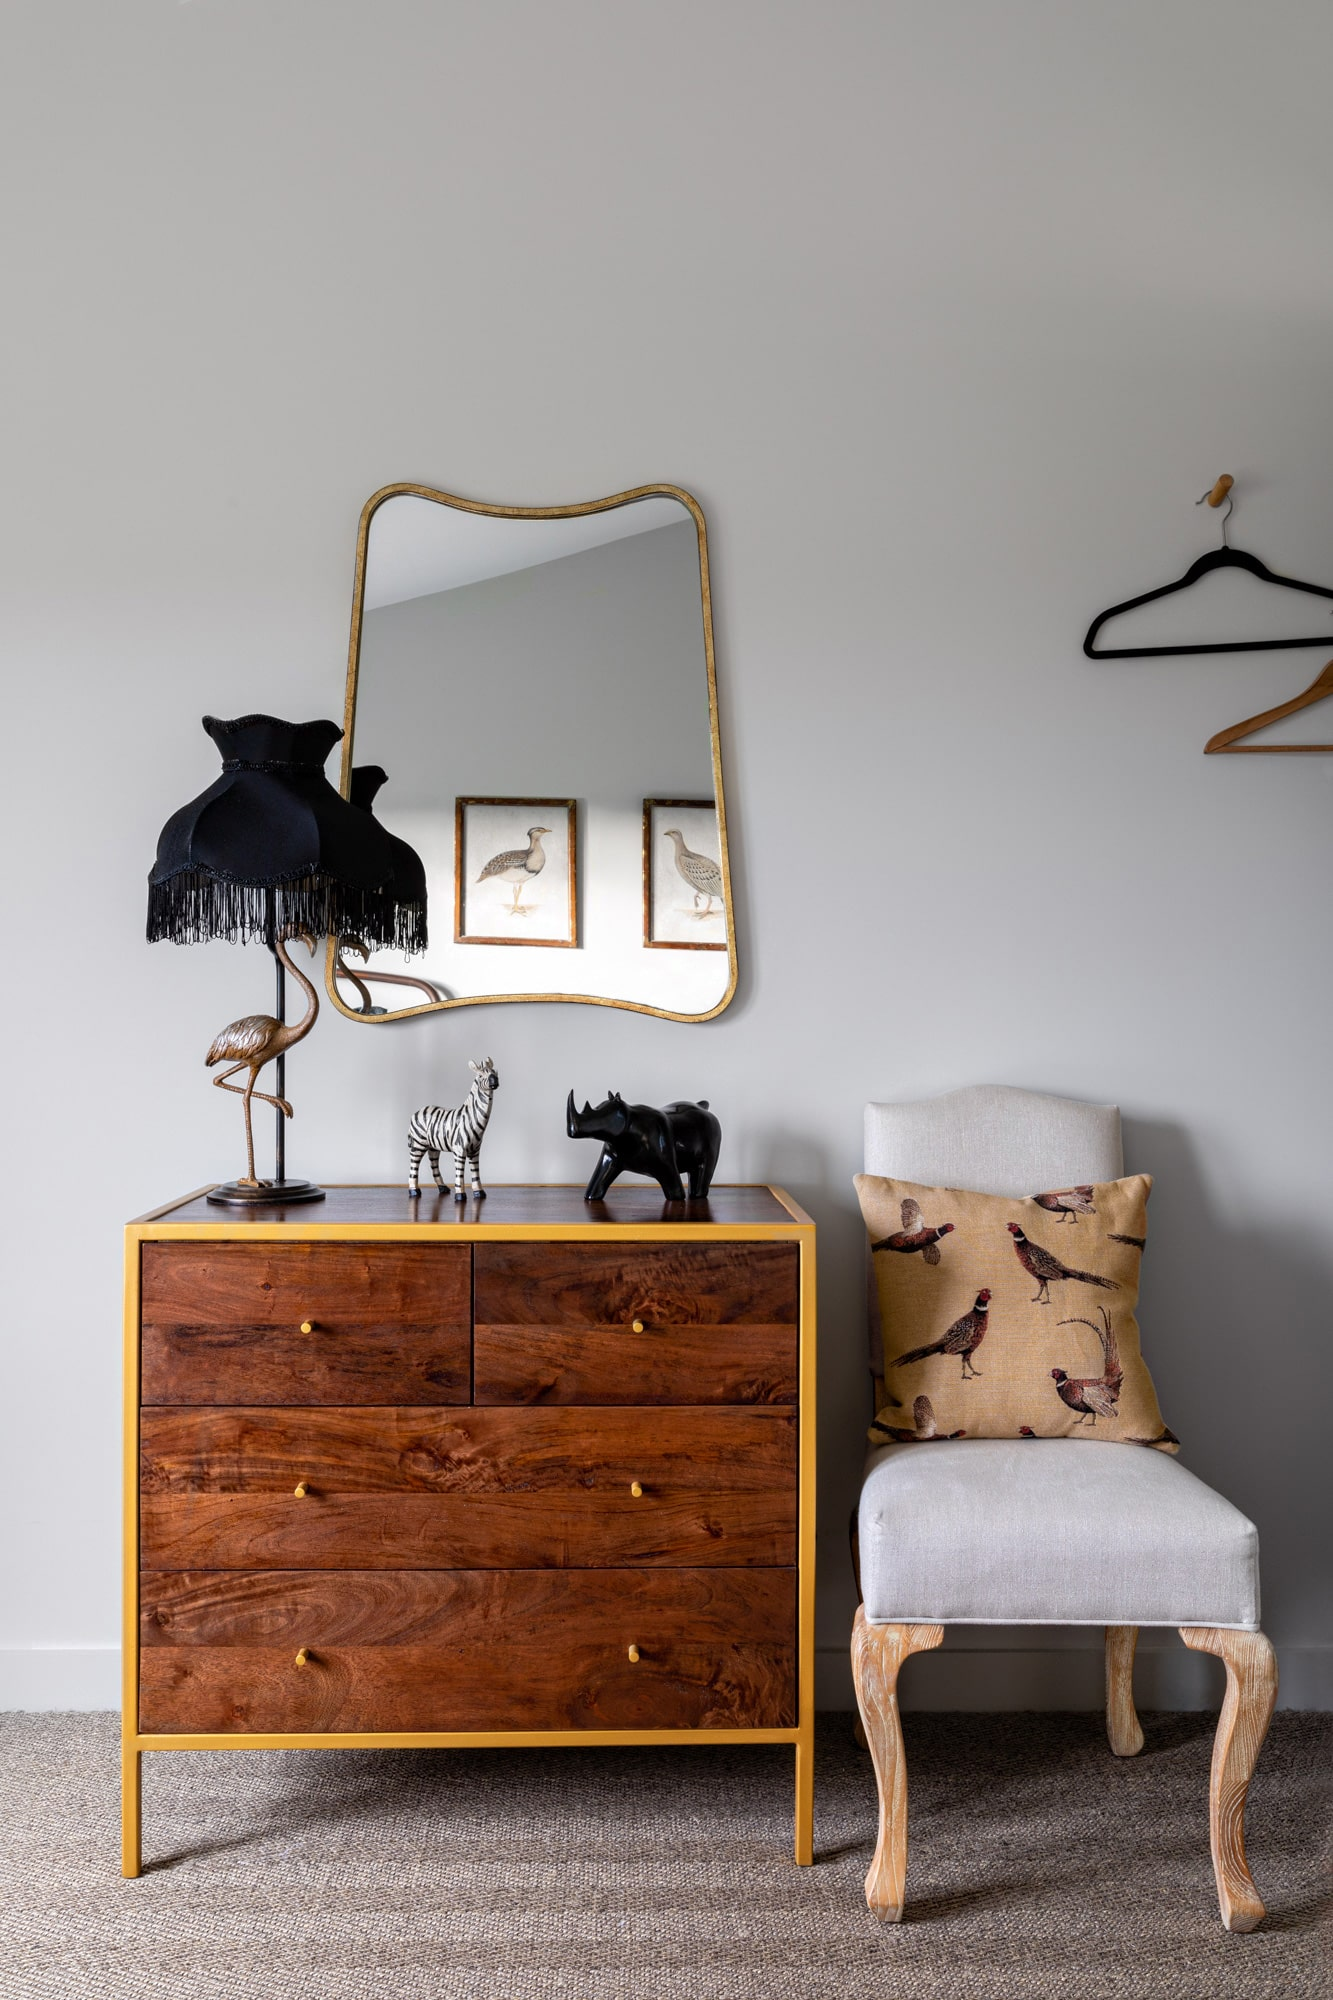 Kids's bedroom detail: brown and gold chest of drawers, a mirror above, black lamp, a grey chair with a cushion; fun figures of animals on the chest of drawers